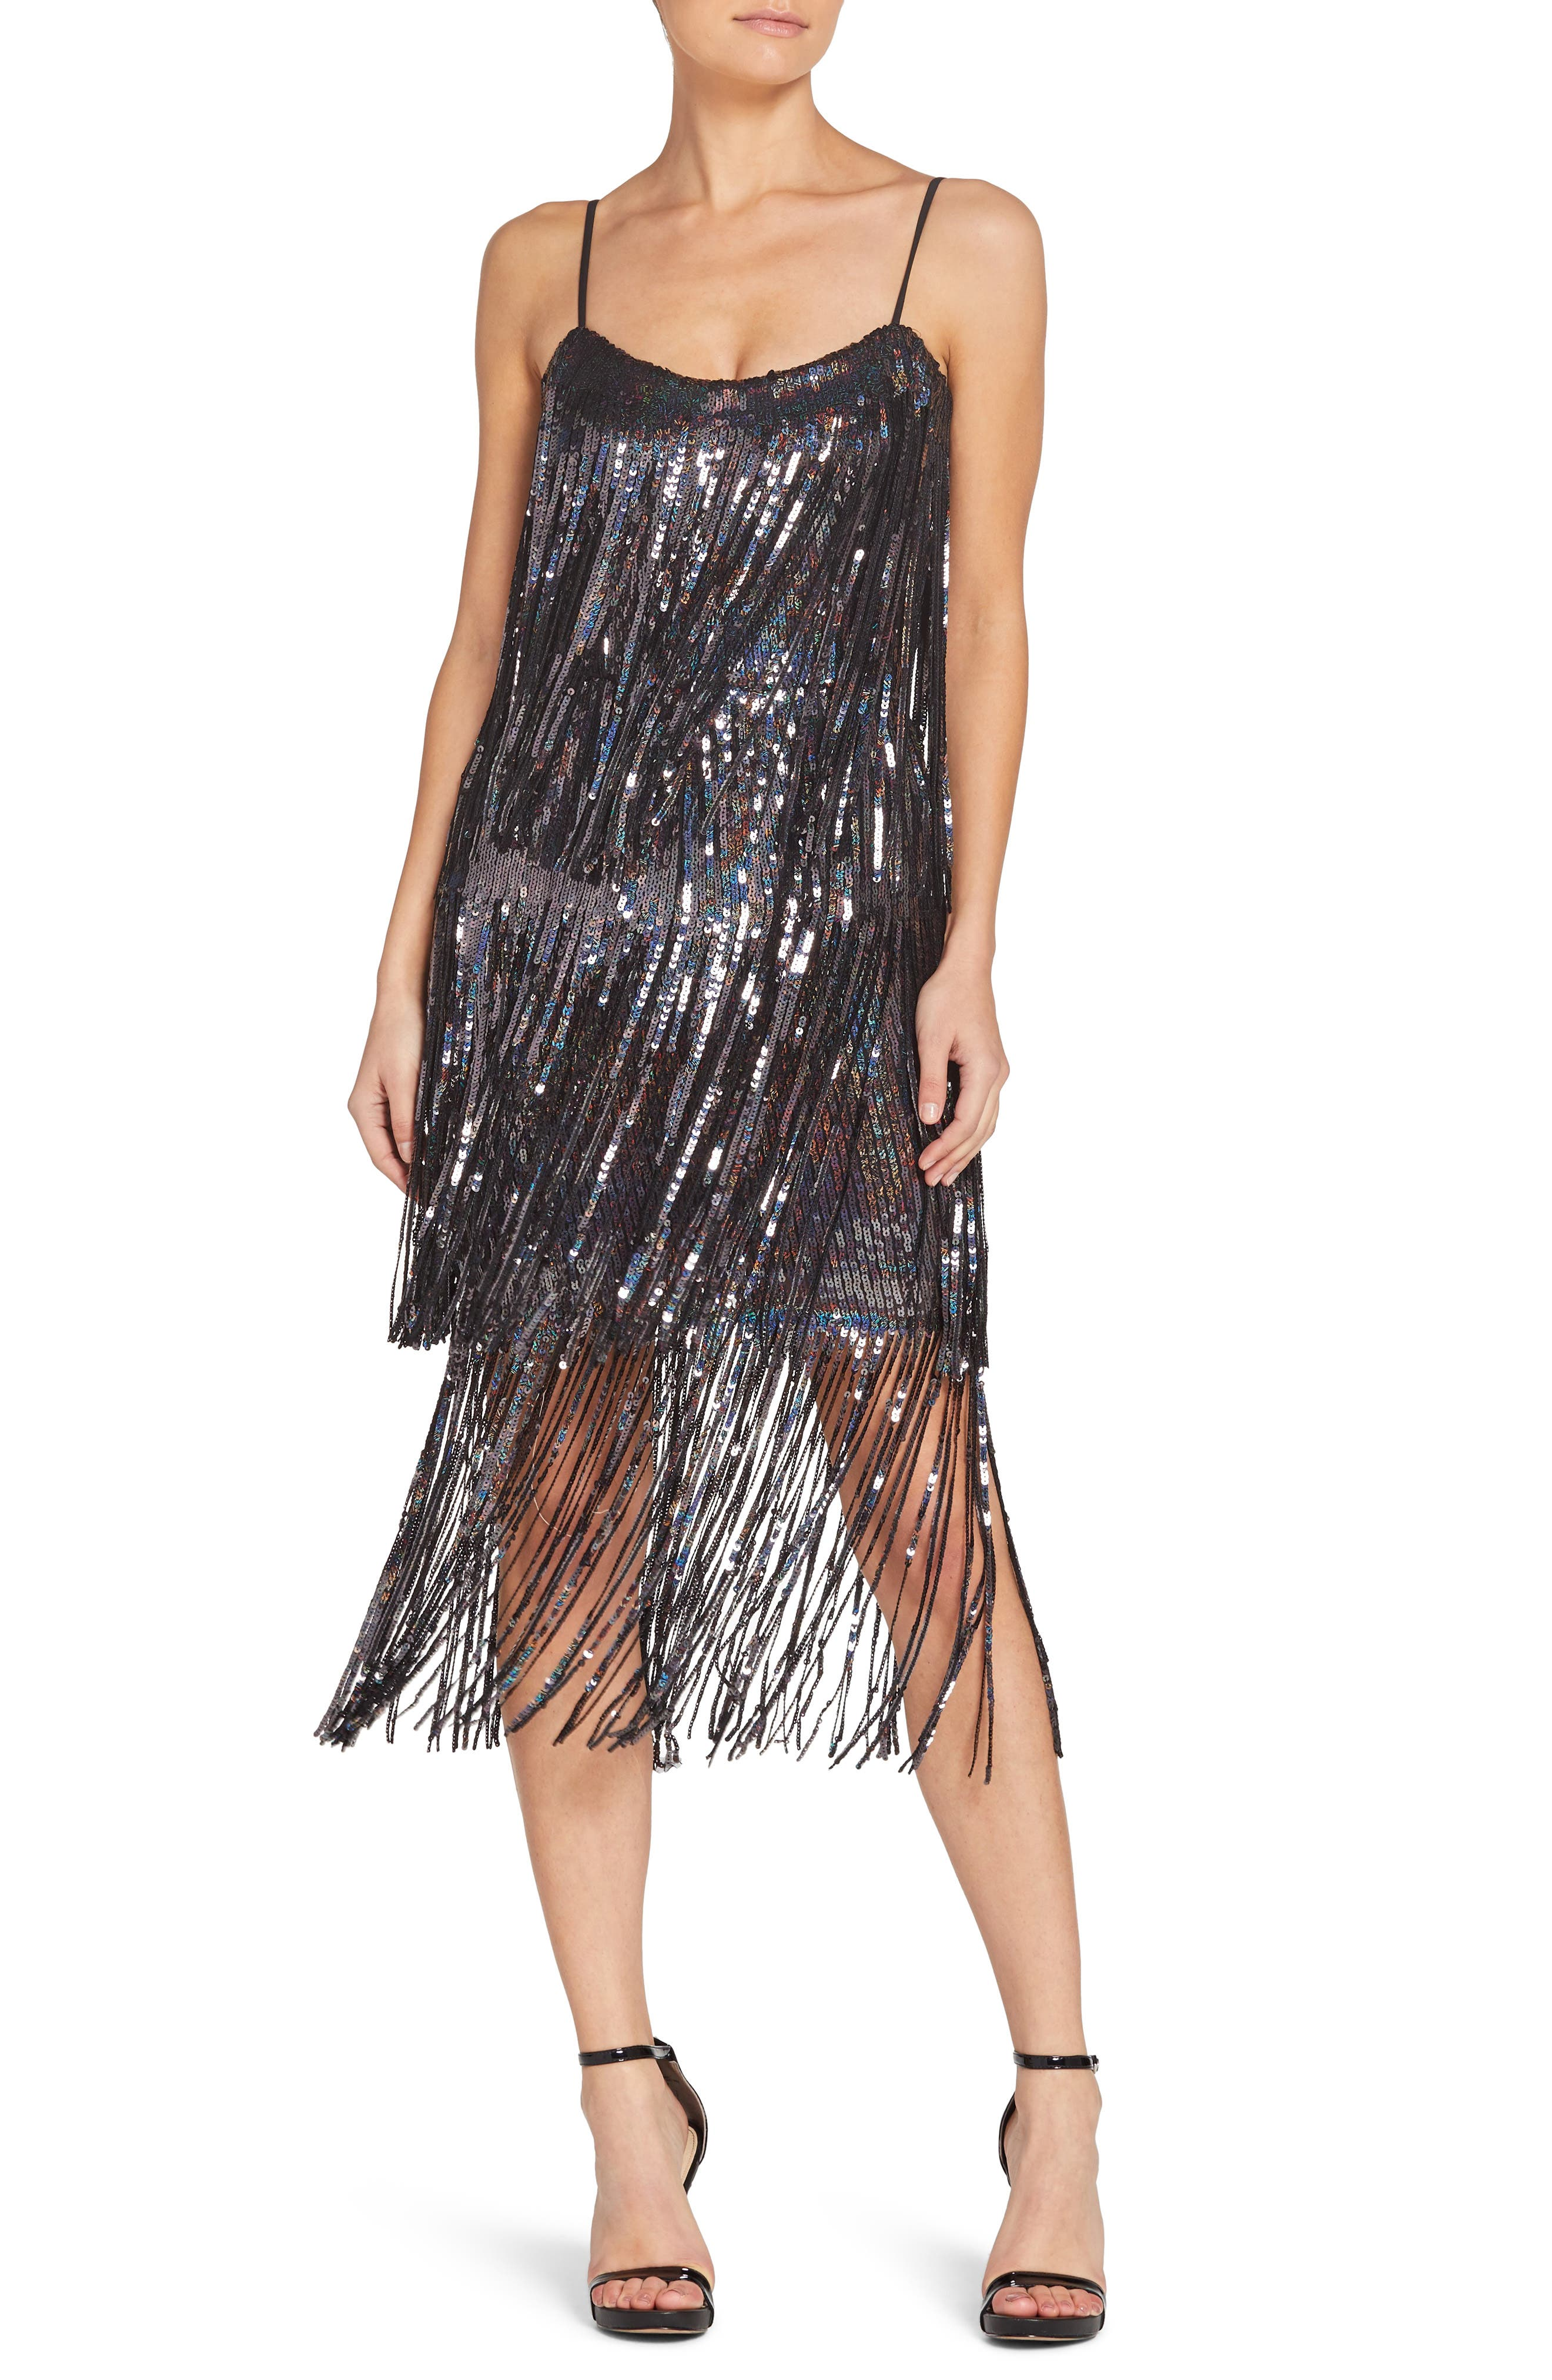 70s Prom, Formal, Evening, Party Dresses Womens Dress The Population Roxy Fringe Shift Dress Size XX-Large - Black $191.98 AT vintagedancer.com